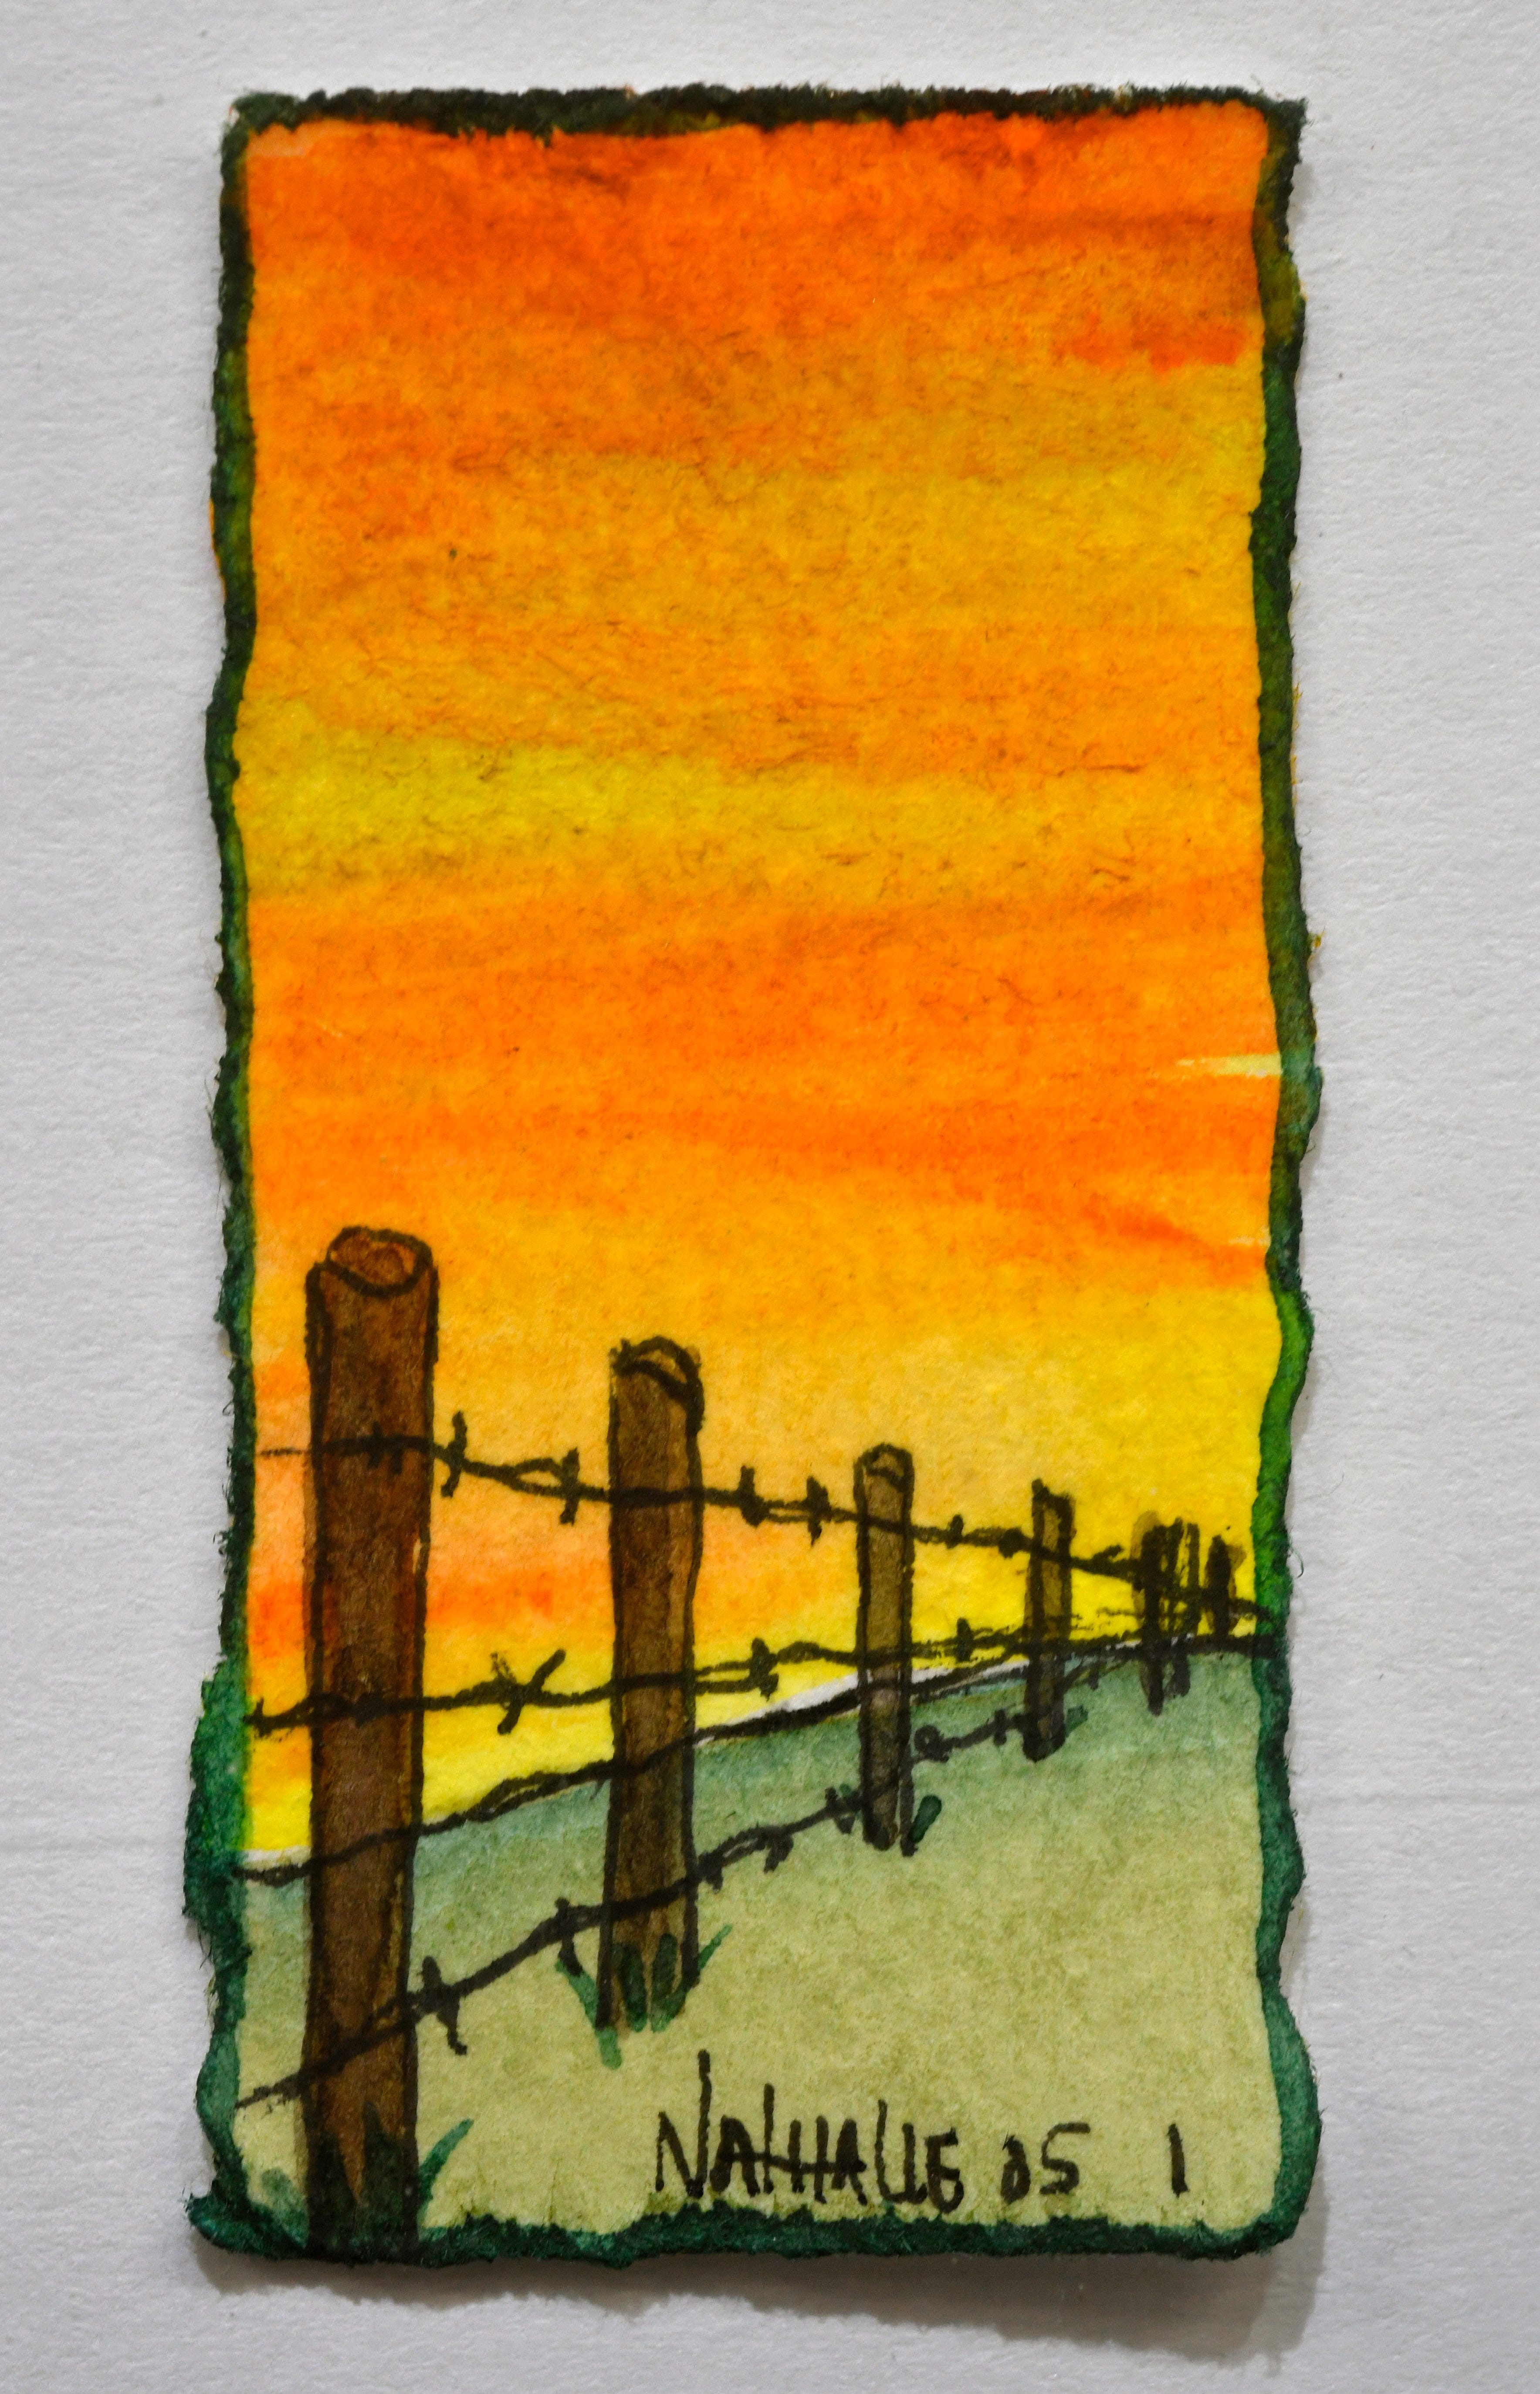 """Nathalie Kelley's """"Fence Posts"""", a watercolor painting about two inches tall, on display at the 1818 Arthouse."""